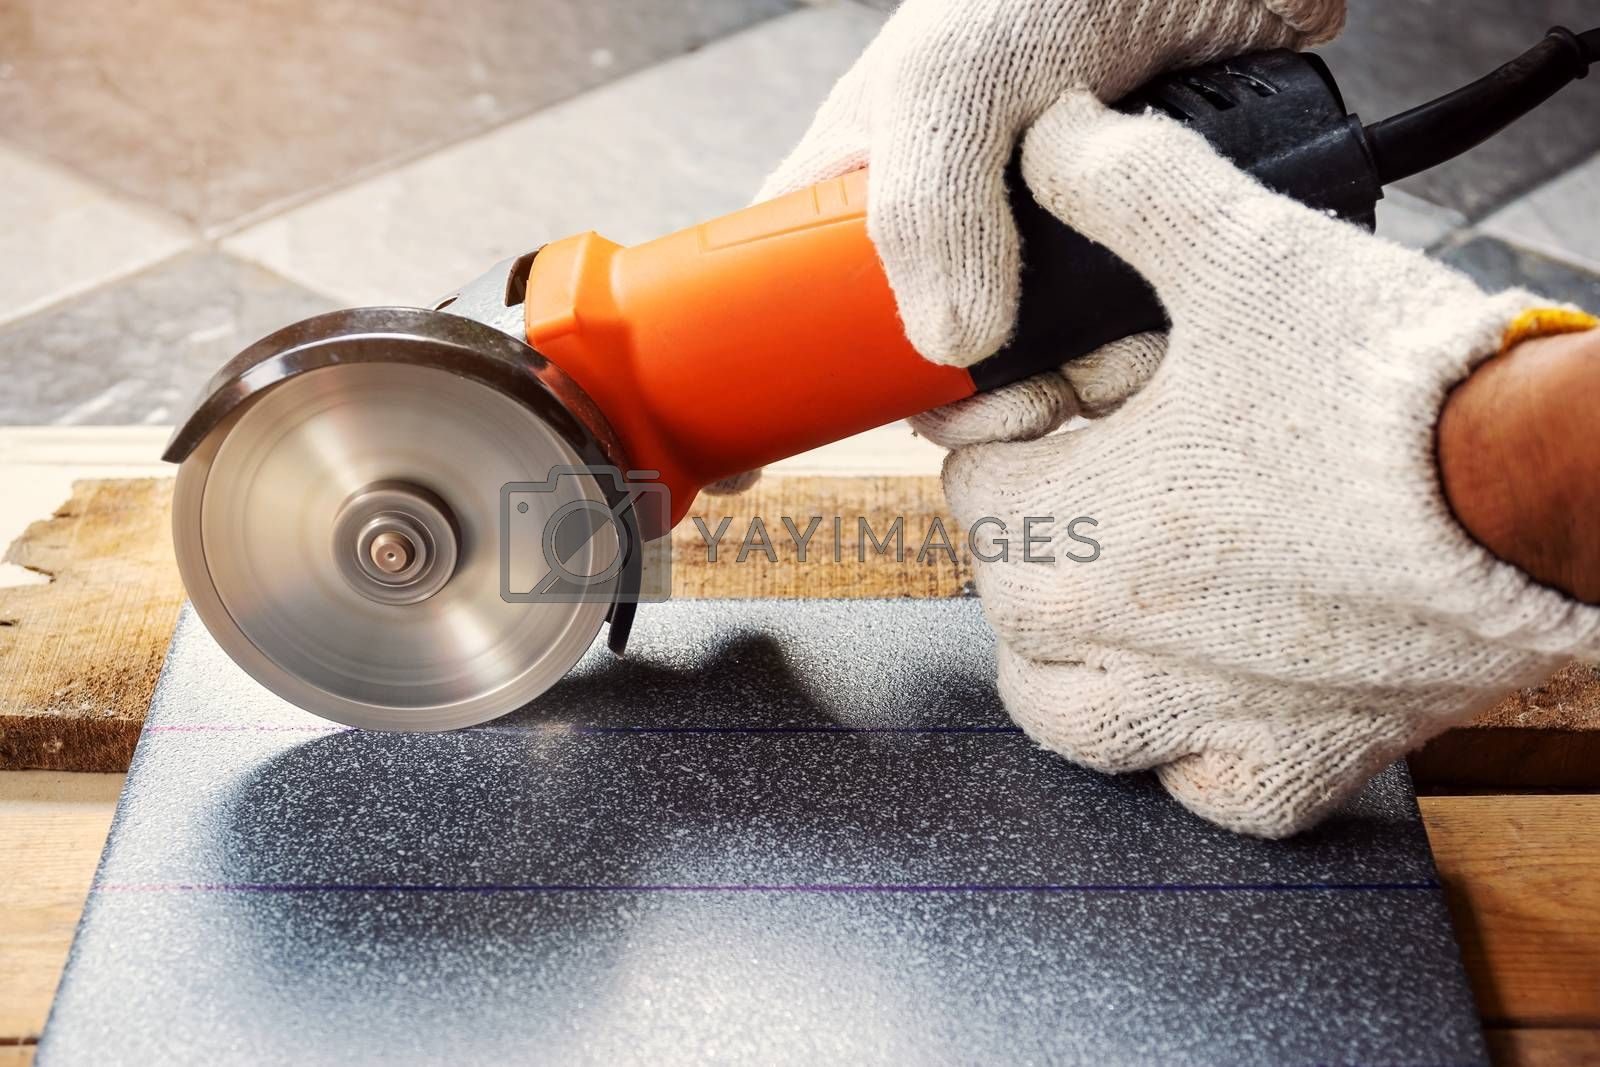 Construction worker wearing white cloth gloves was cutting the tiles with an electric grinder.